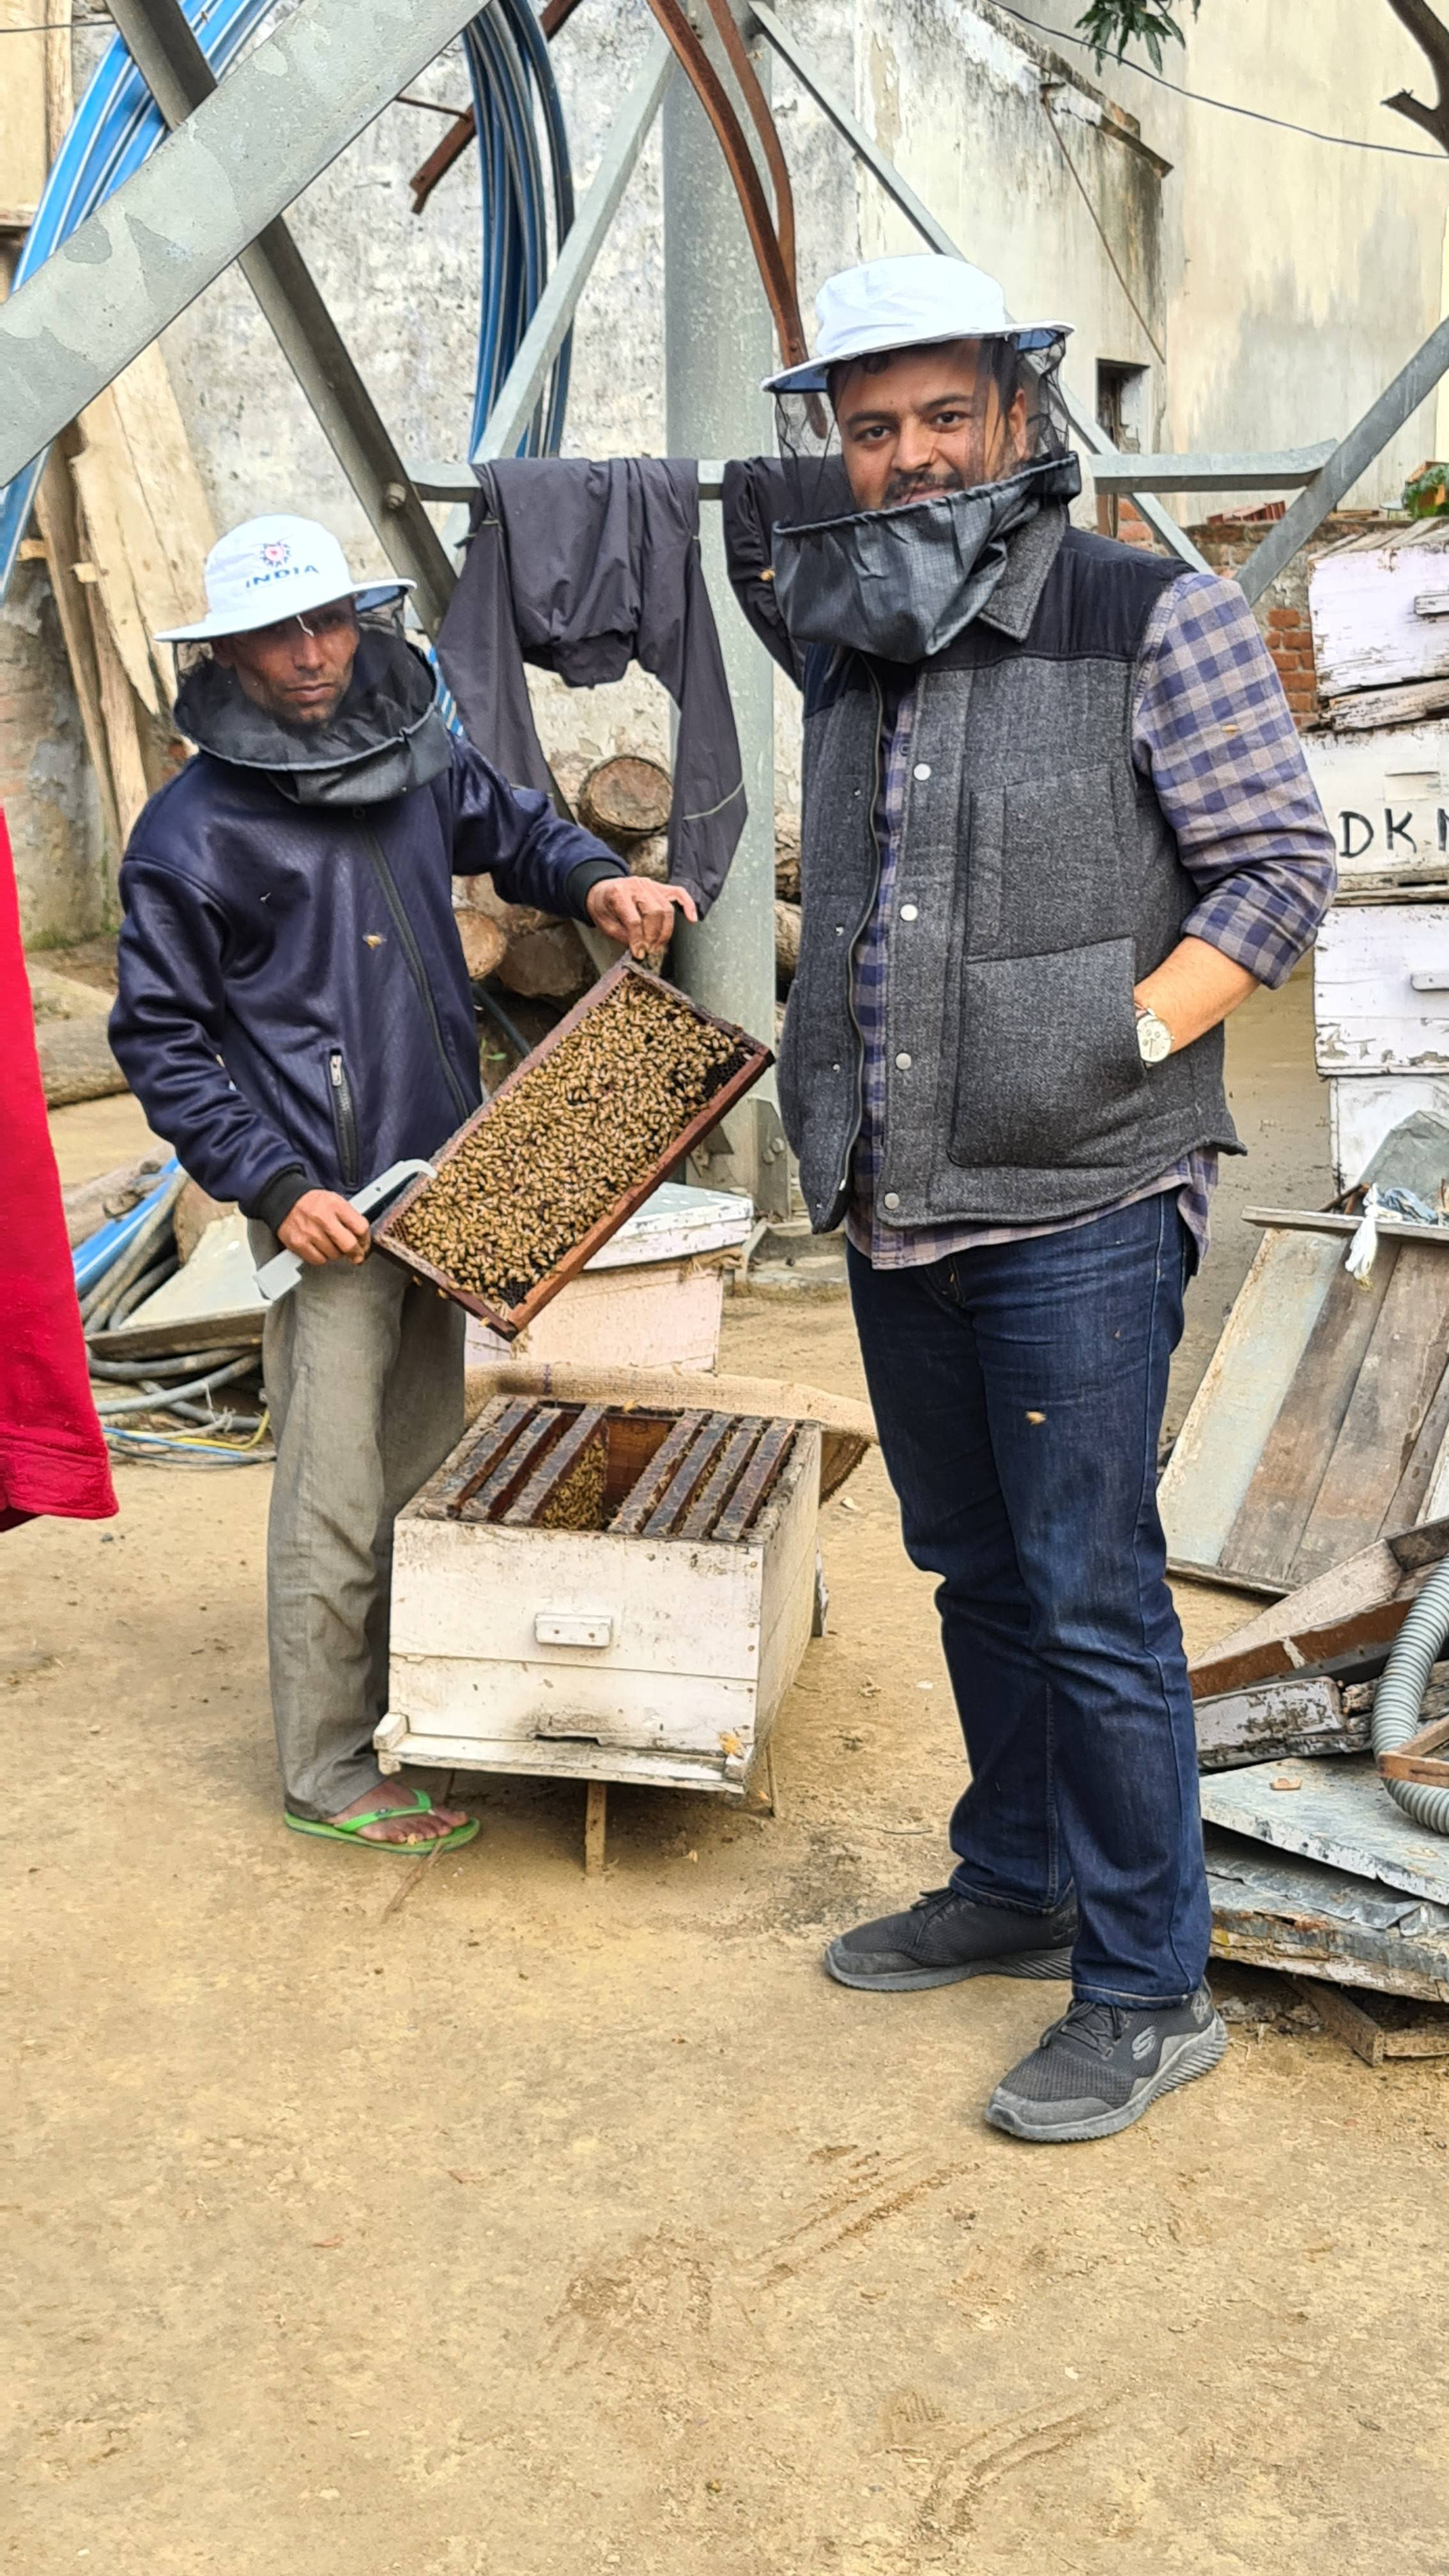 [Image] I train farmers to farm naturally/organically. I always wanted to add being an Apiarist as my skillset so from today I am.doing it.